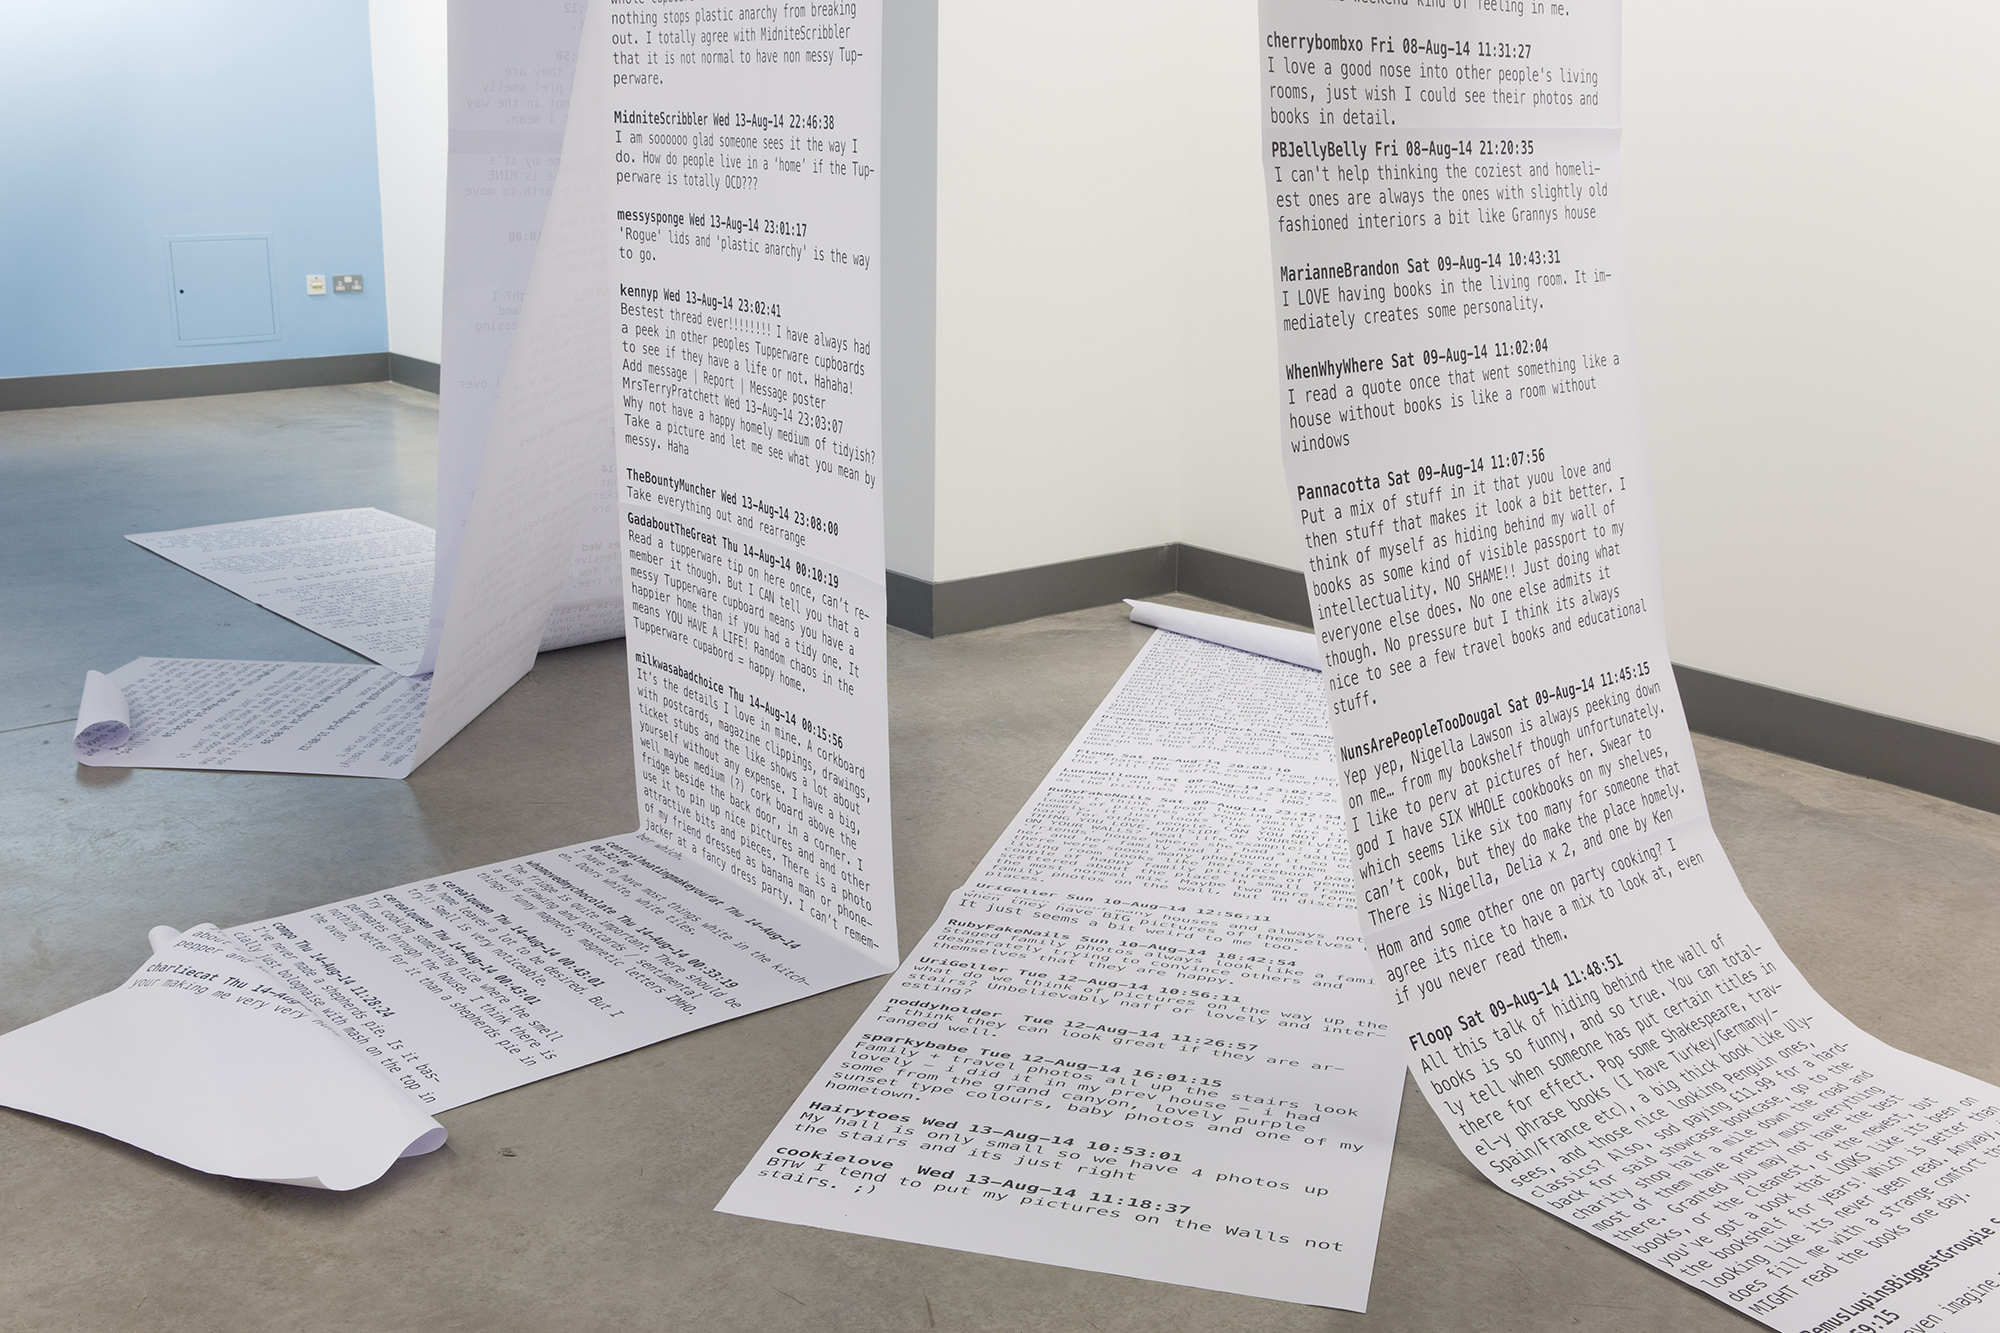 Home Instruction Manual, The Gallery, Belfast School of Art